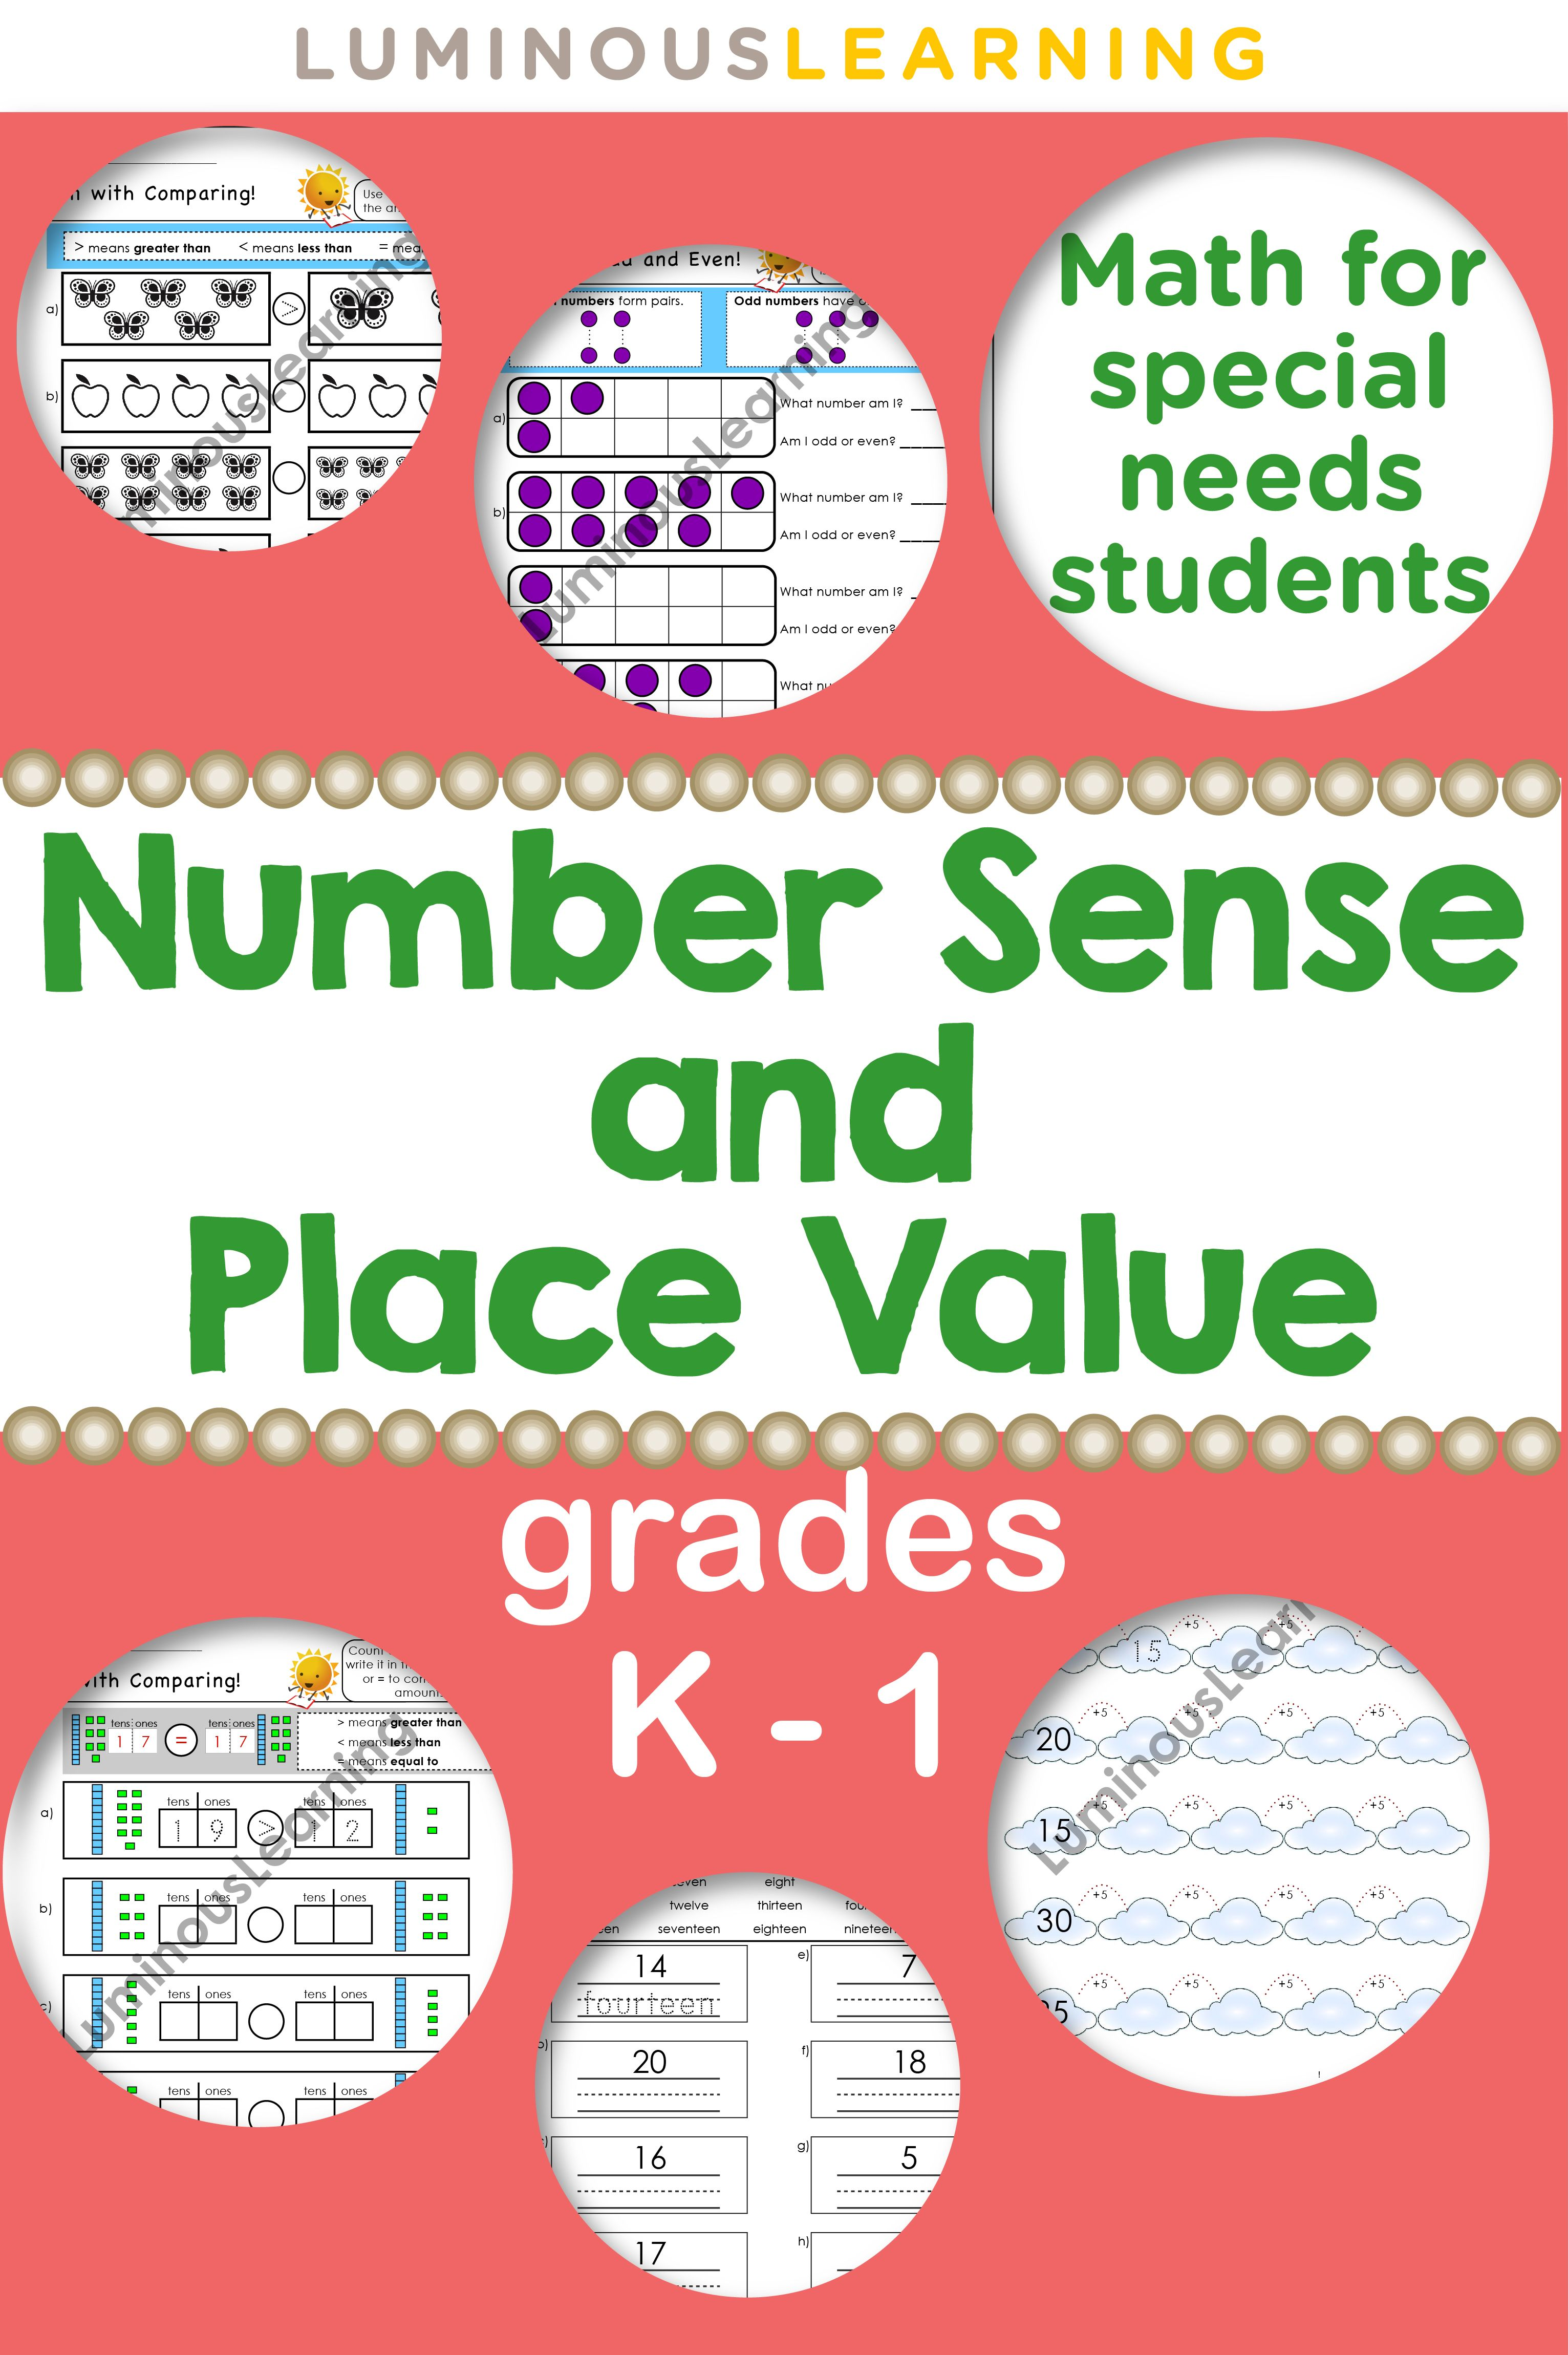 Providing Math Help With Visual Math Worksheets Which